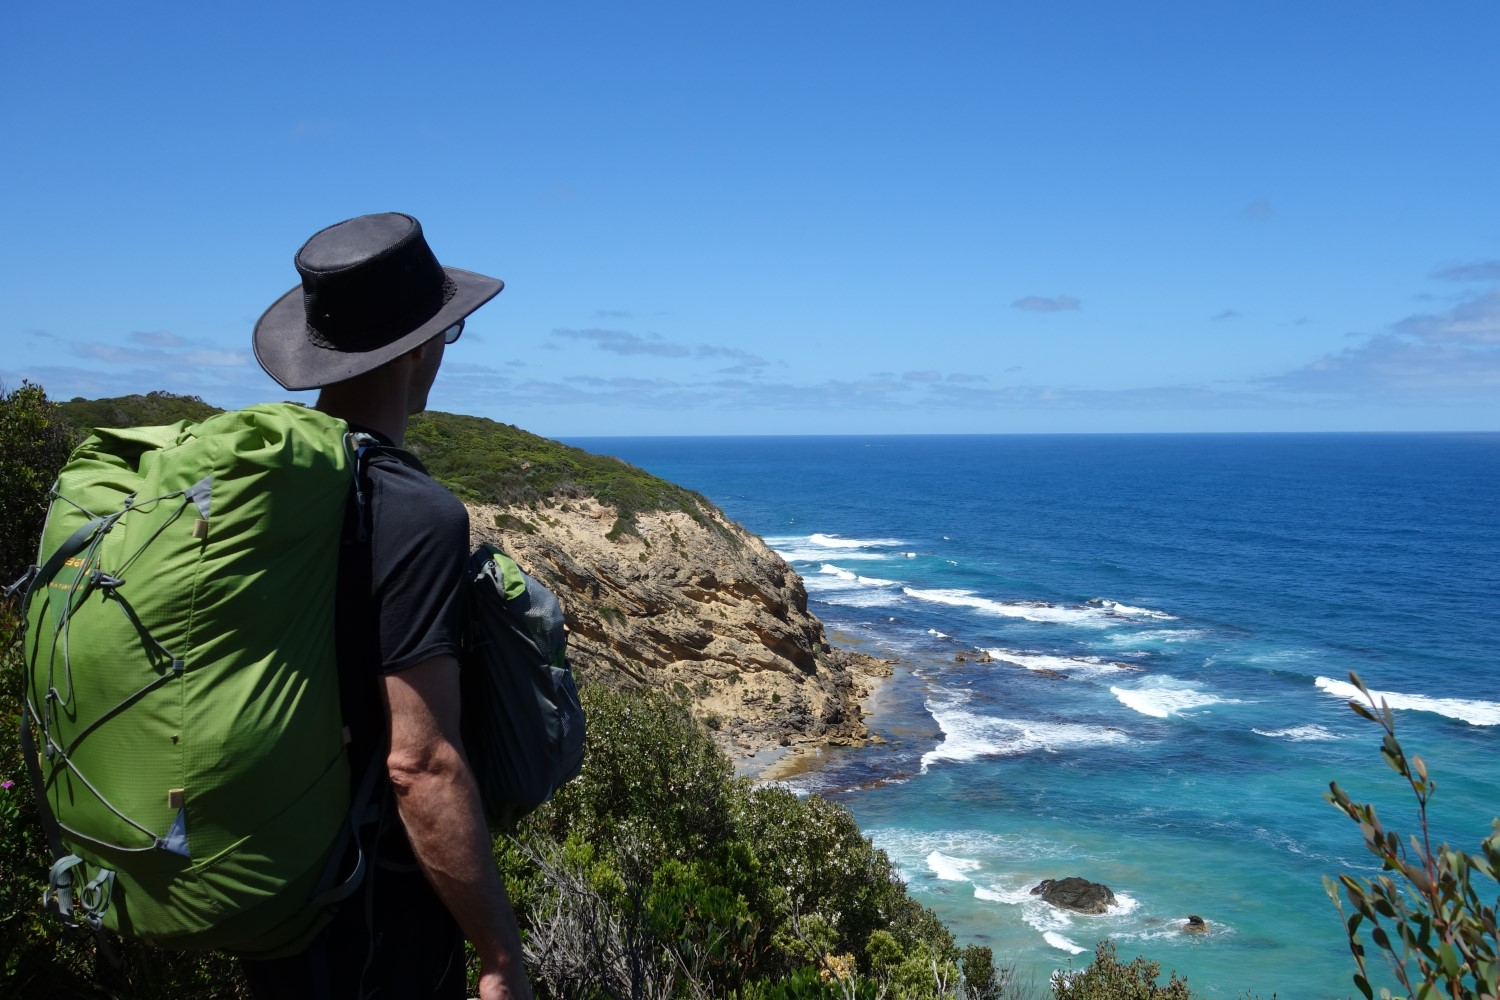 T-shirts are awesome for warm sunny days! Like the weather on this day hiking near Cape Otway, Australia.